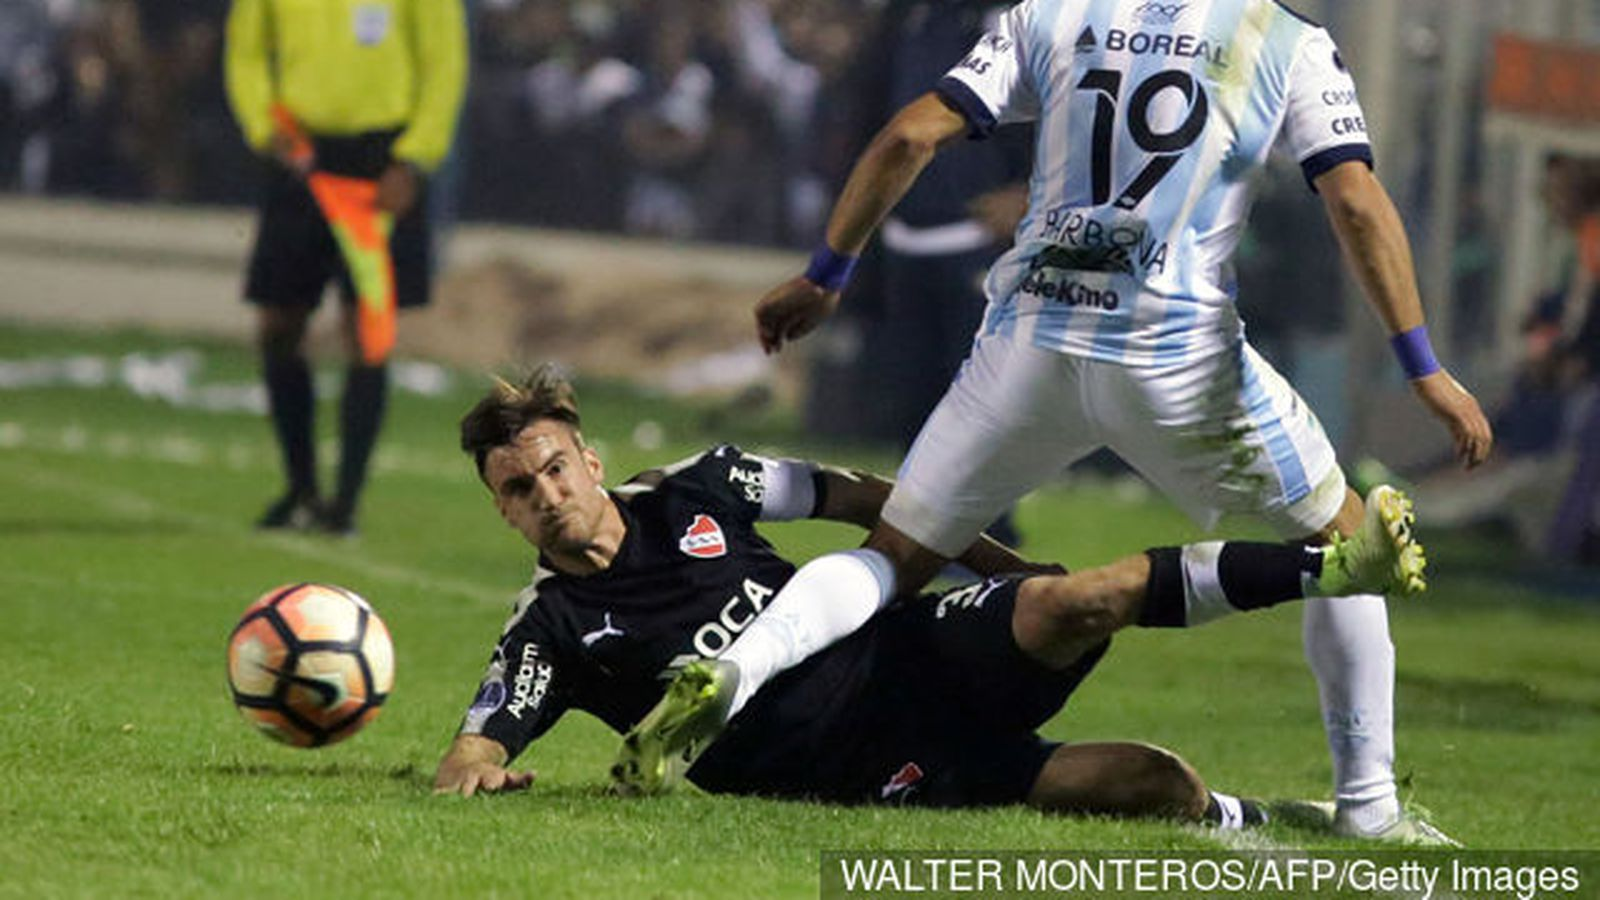 David_barbona_r_of_atletico_tucuman_disputes_the_ball_with_nicol_535822.0